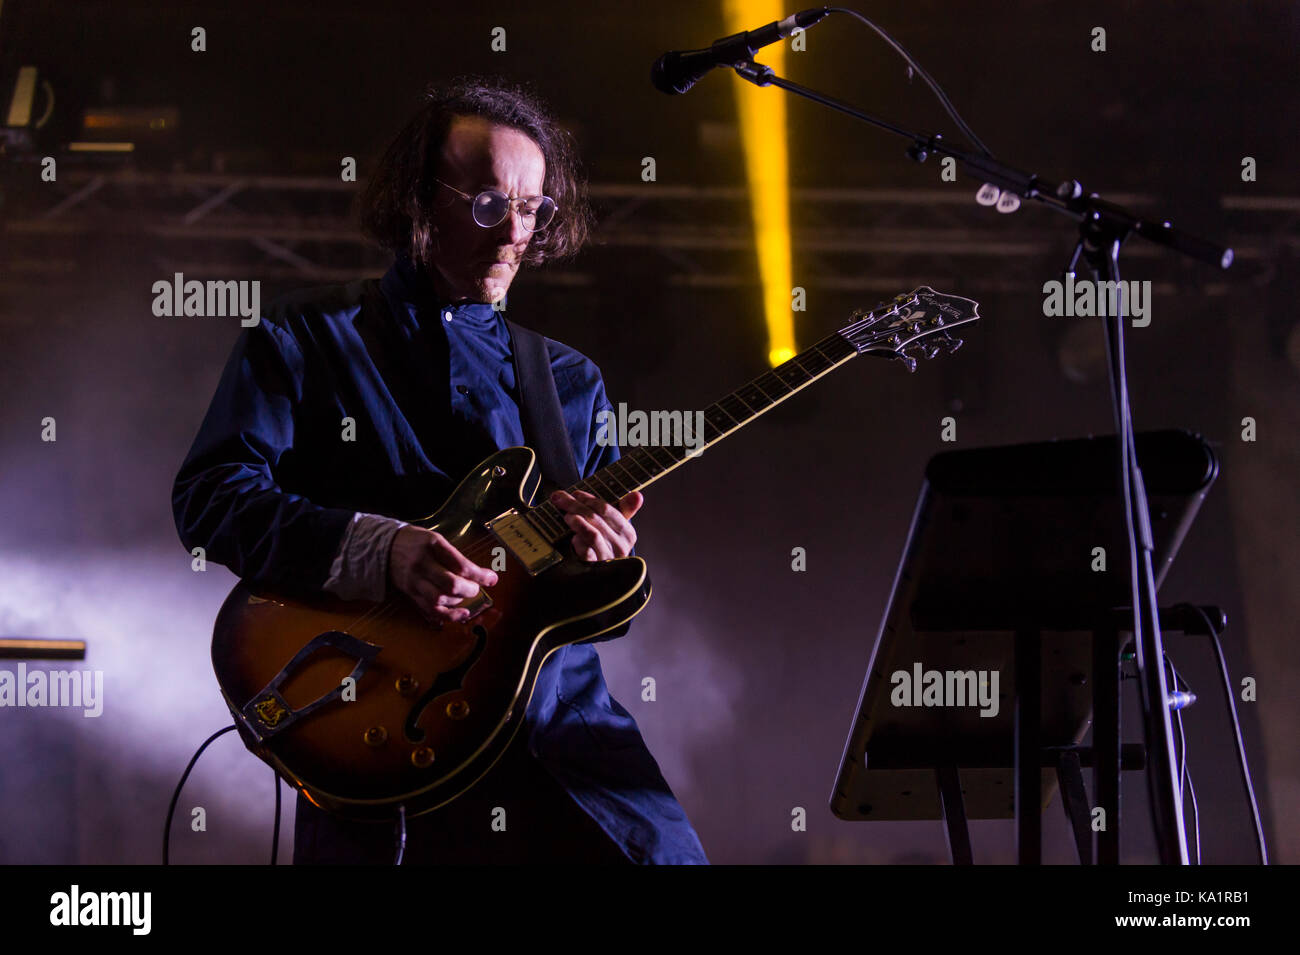 Thornhill, Scotland, UK - September 1, 2017: Andy Monaghan of Scottish indie rock band Frightened Rabbit headlining - Stock Image